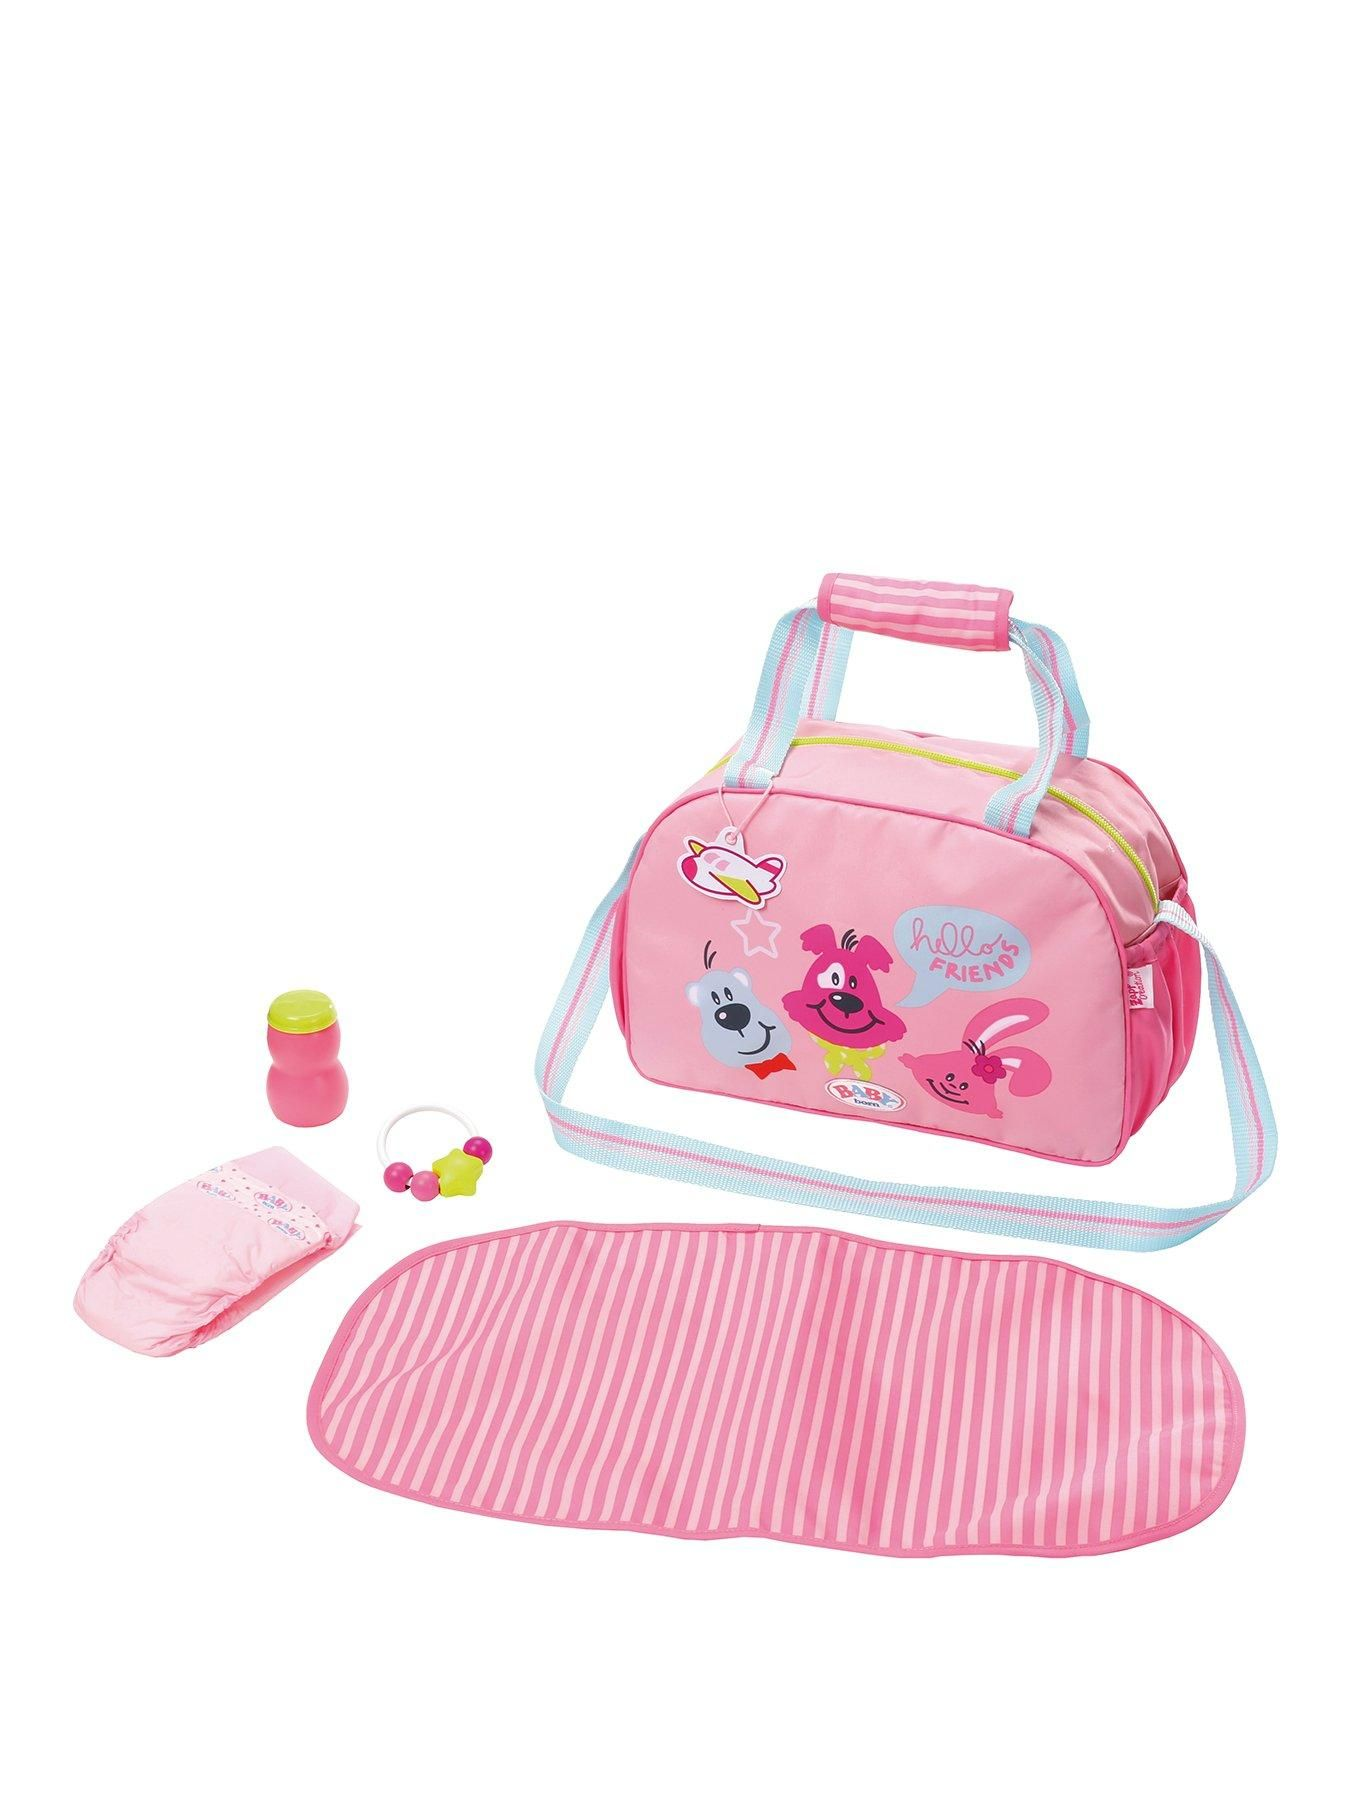 Baby Born Changing Bag With Images Baby Born Changing Bag Baby Doll Accessories